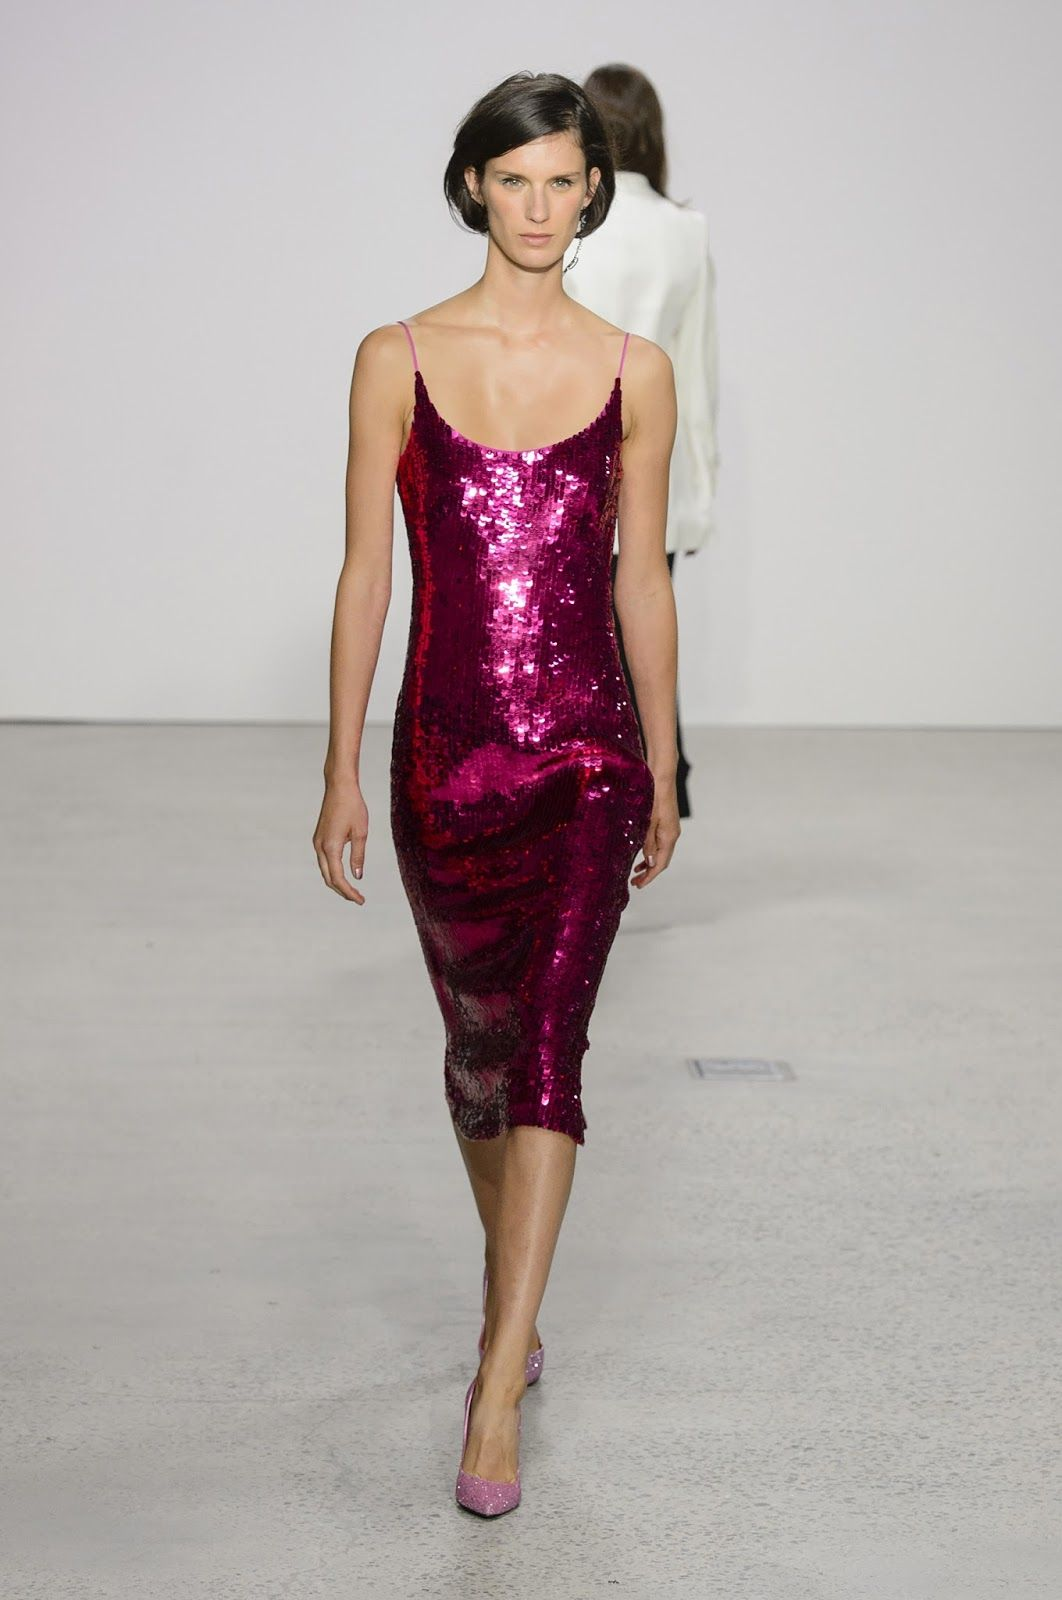 Oscar de la renta zsazsa bellagio wear this hell yeah